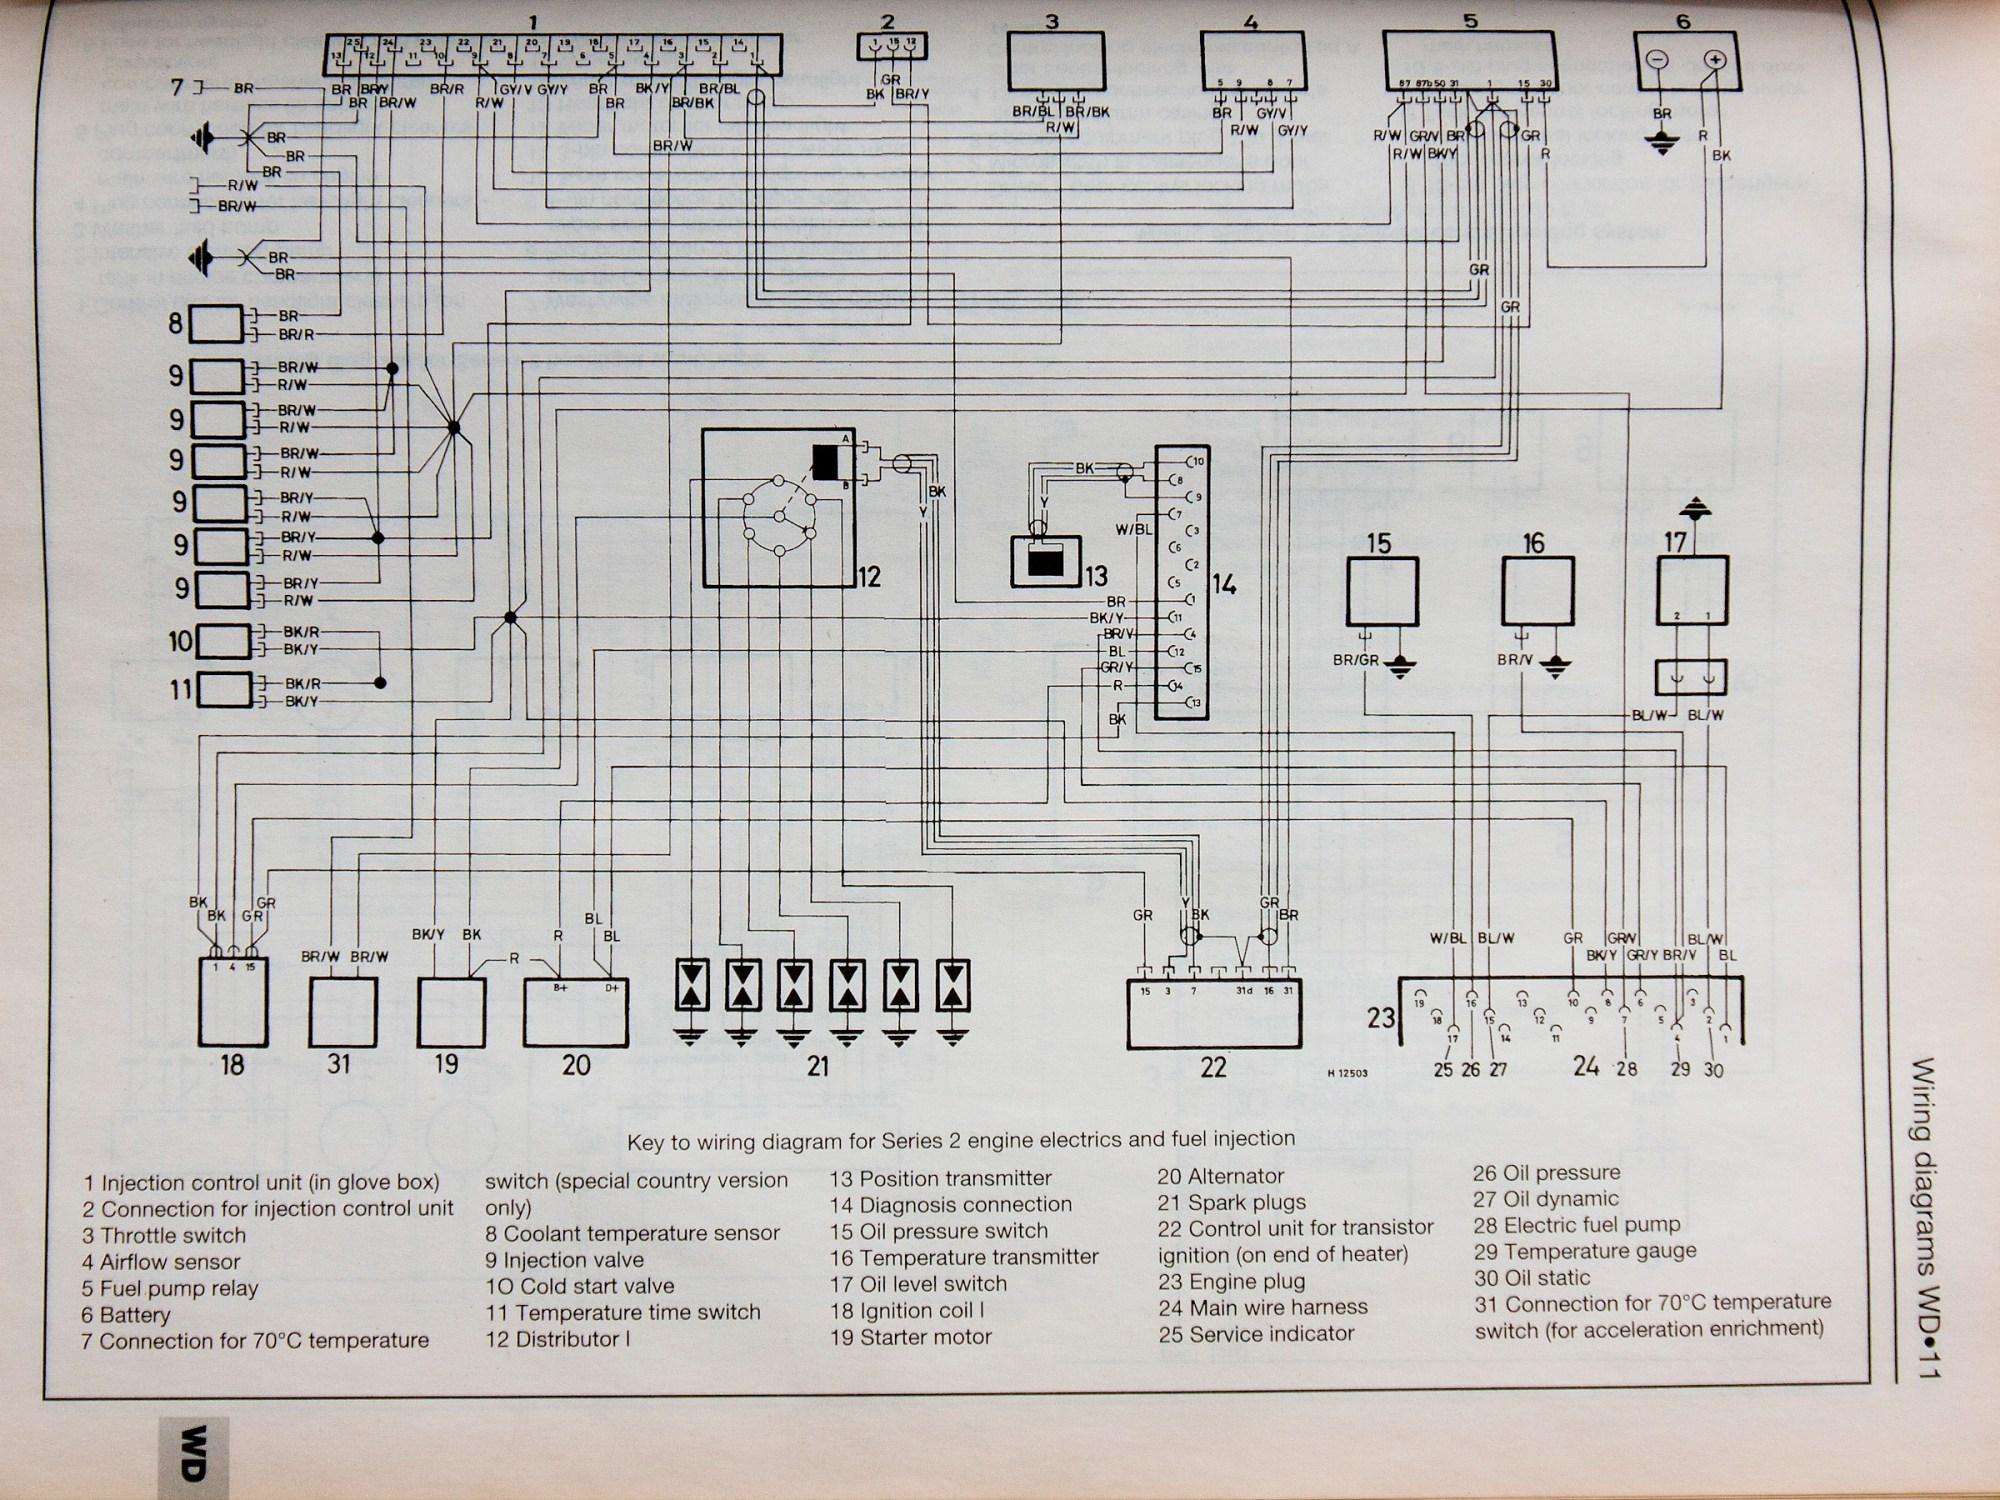 hight resolution of bmw e21 wiring diagram wiring diagrams 1995 f250 fuel pump wire diagram e21 wiring diagram